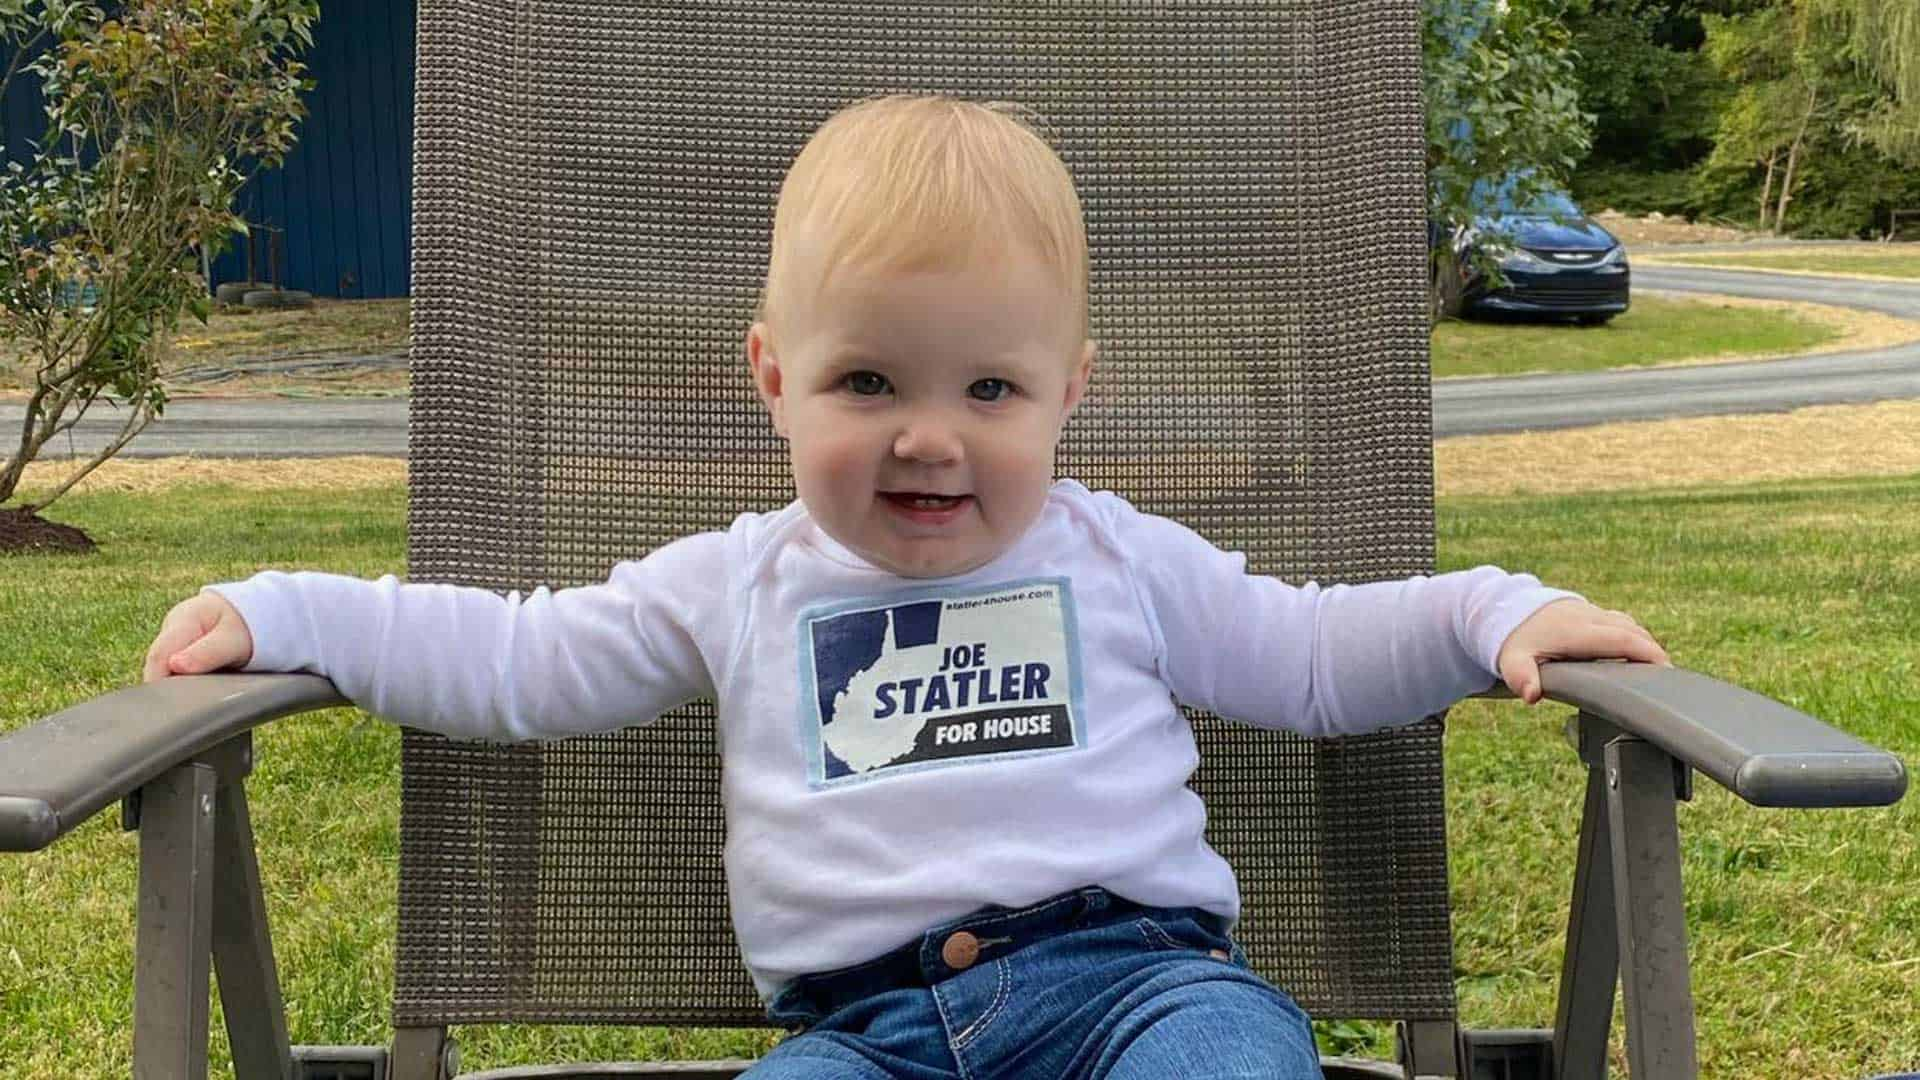 Joe Statler is running for our future.